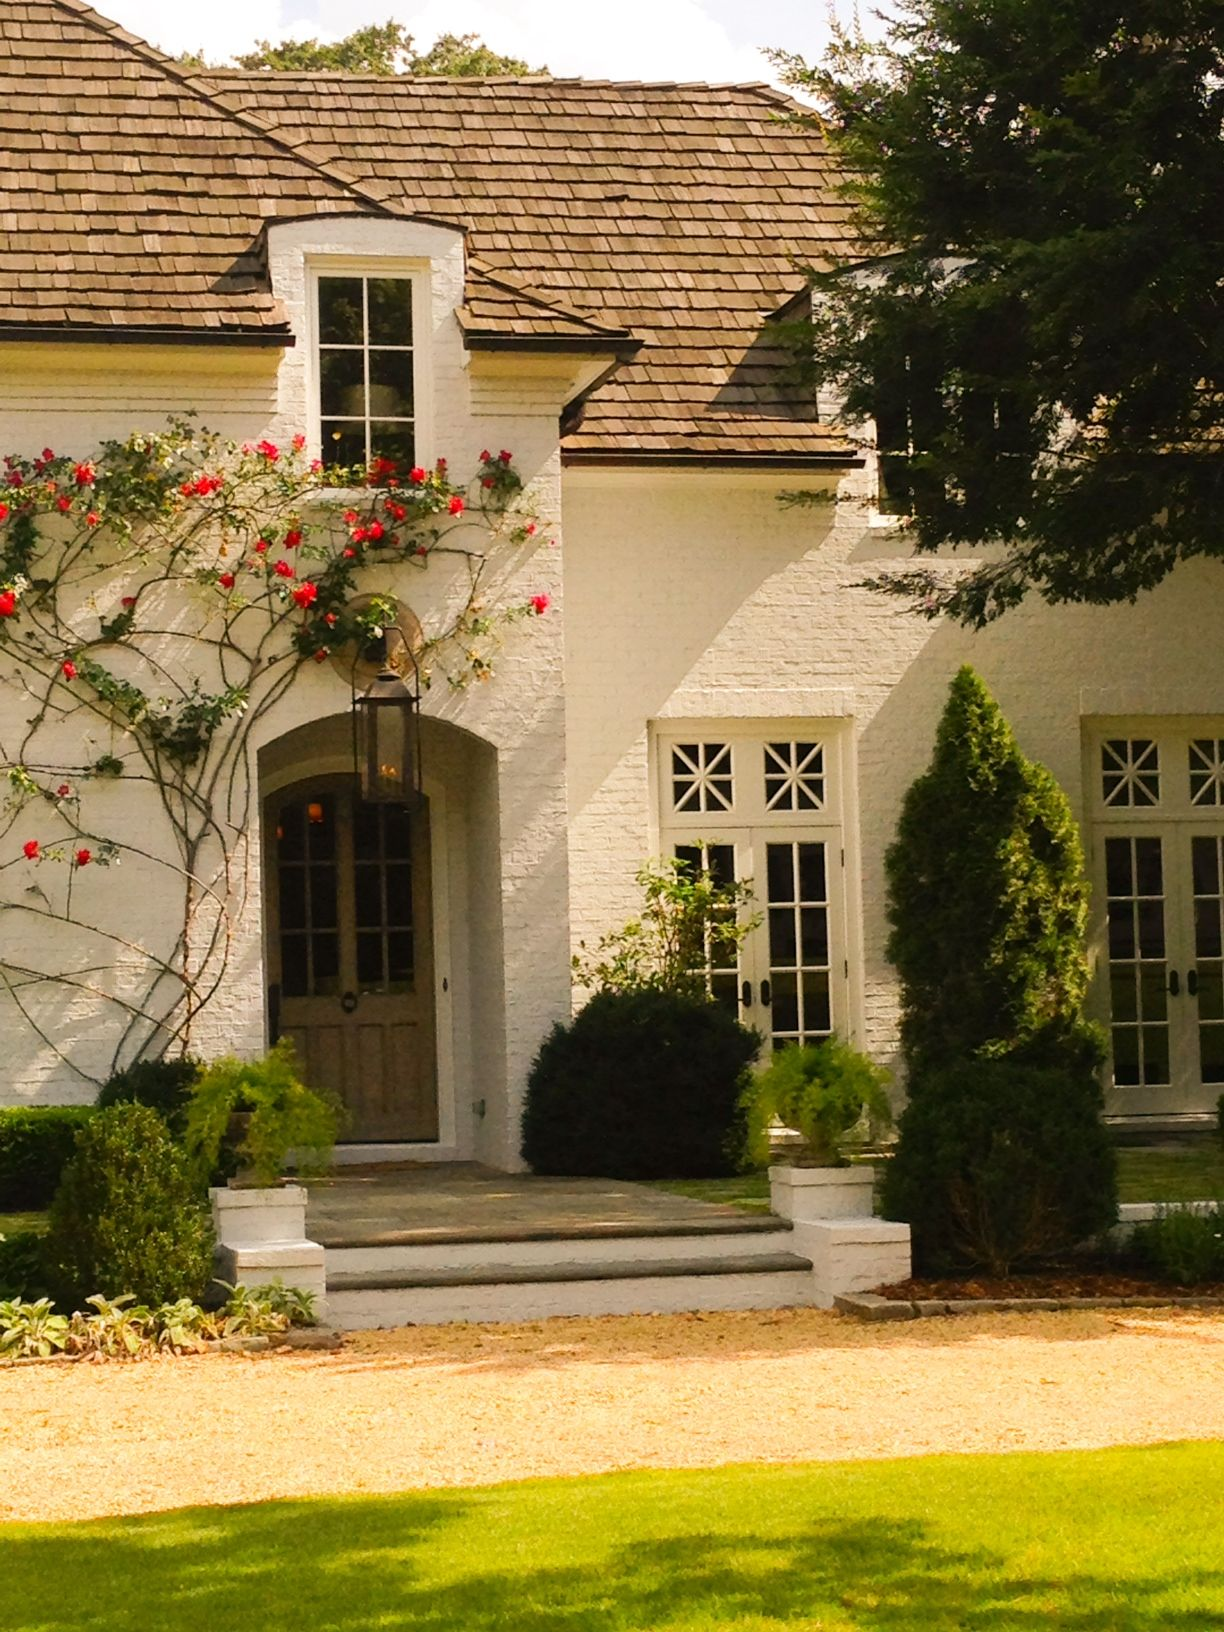 The perfect paint schemes for house exterior exterior - Country style exterior house colors ...